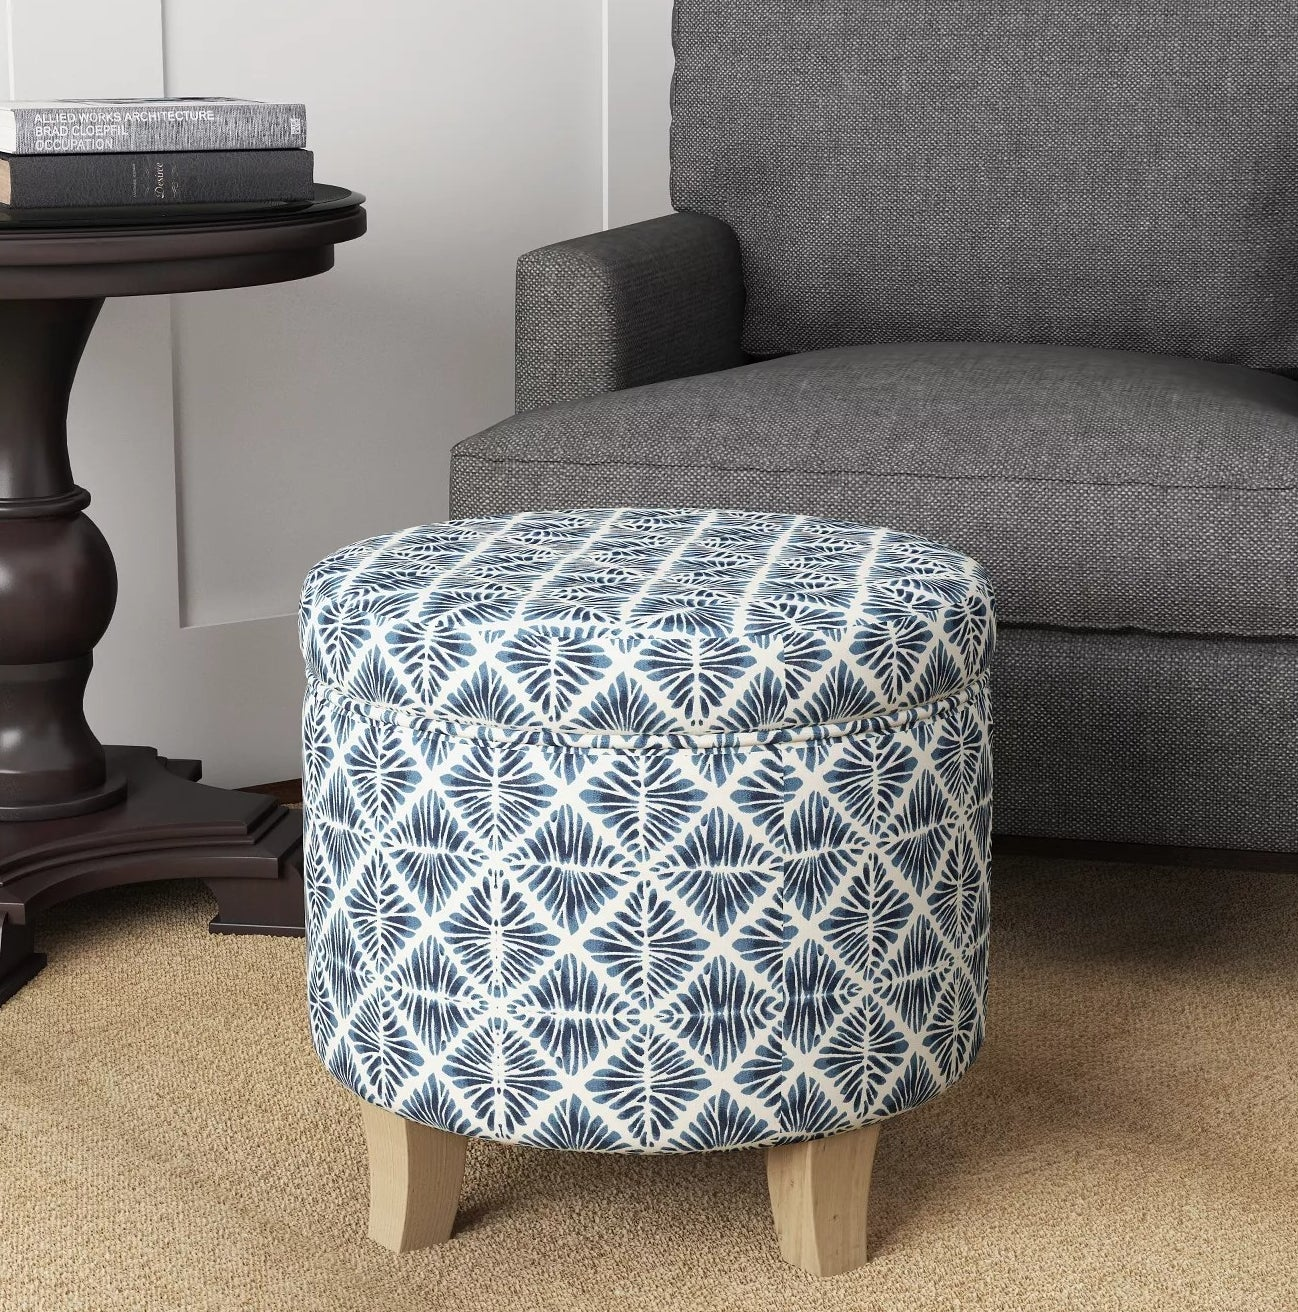 A blue diamond-patterned storage ottoman